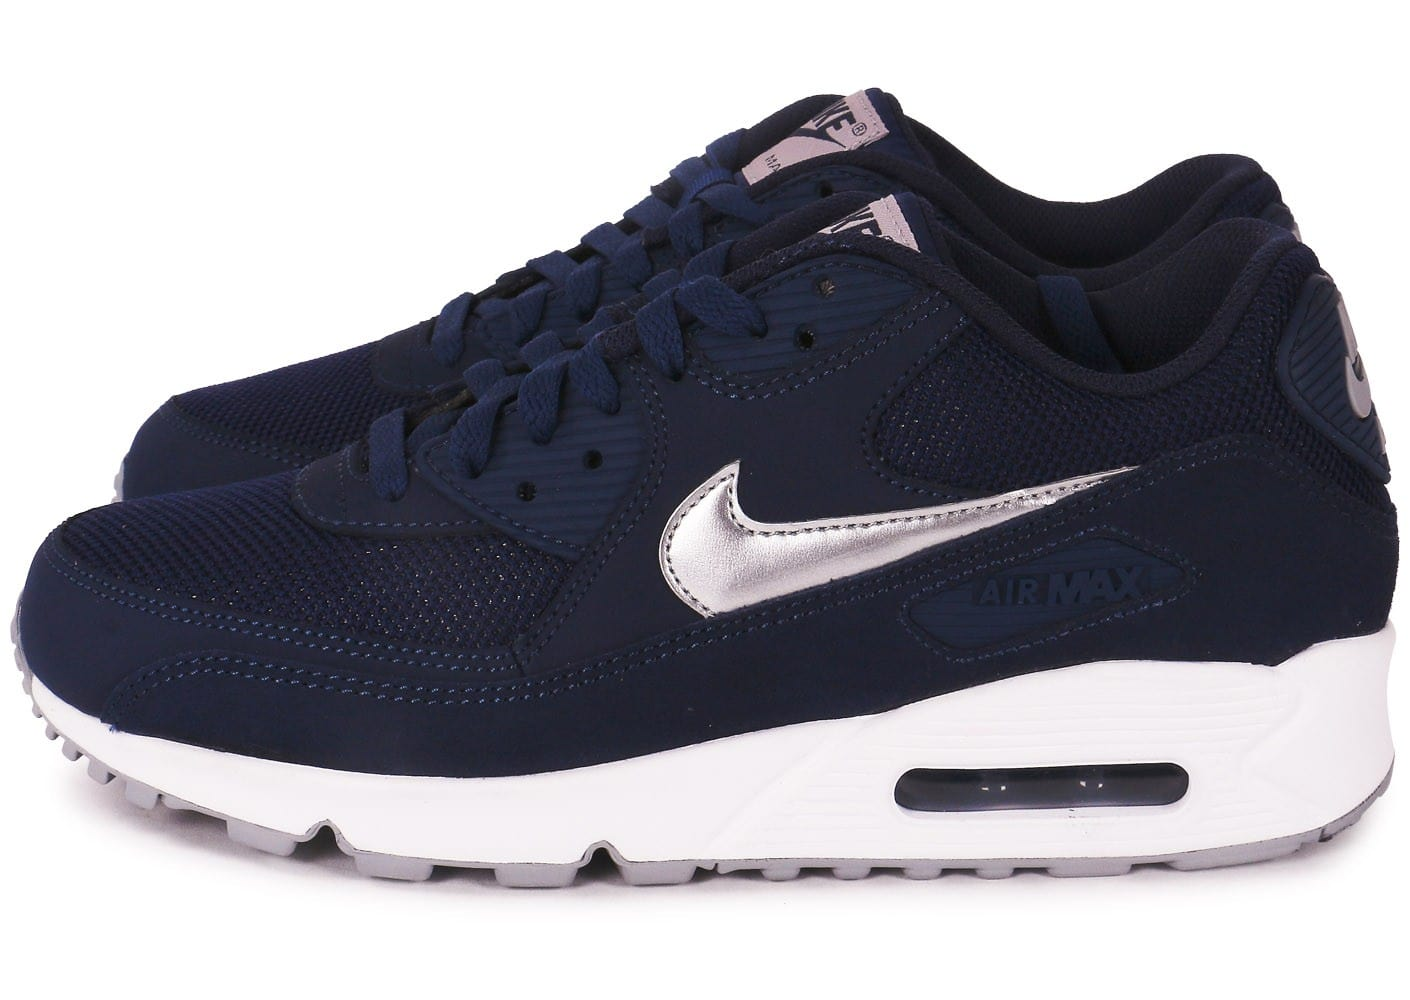 cheaper on wholesale official Nike Air Max 90 marine et blanc - Chaussures Baskets homme - Chausport